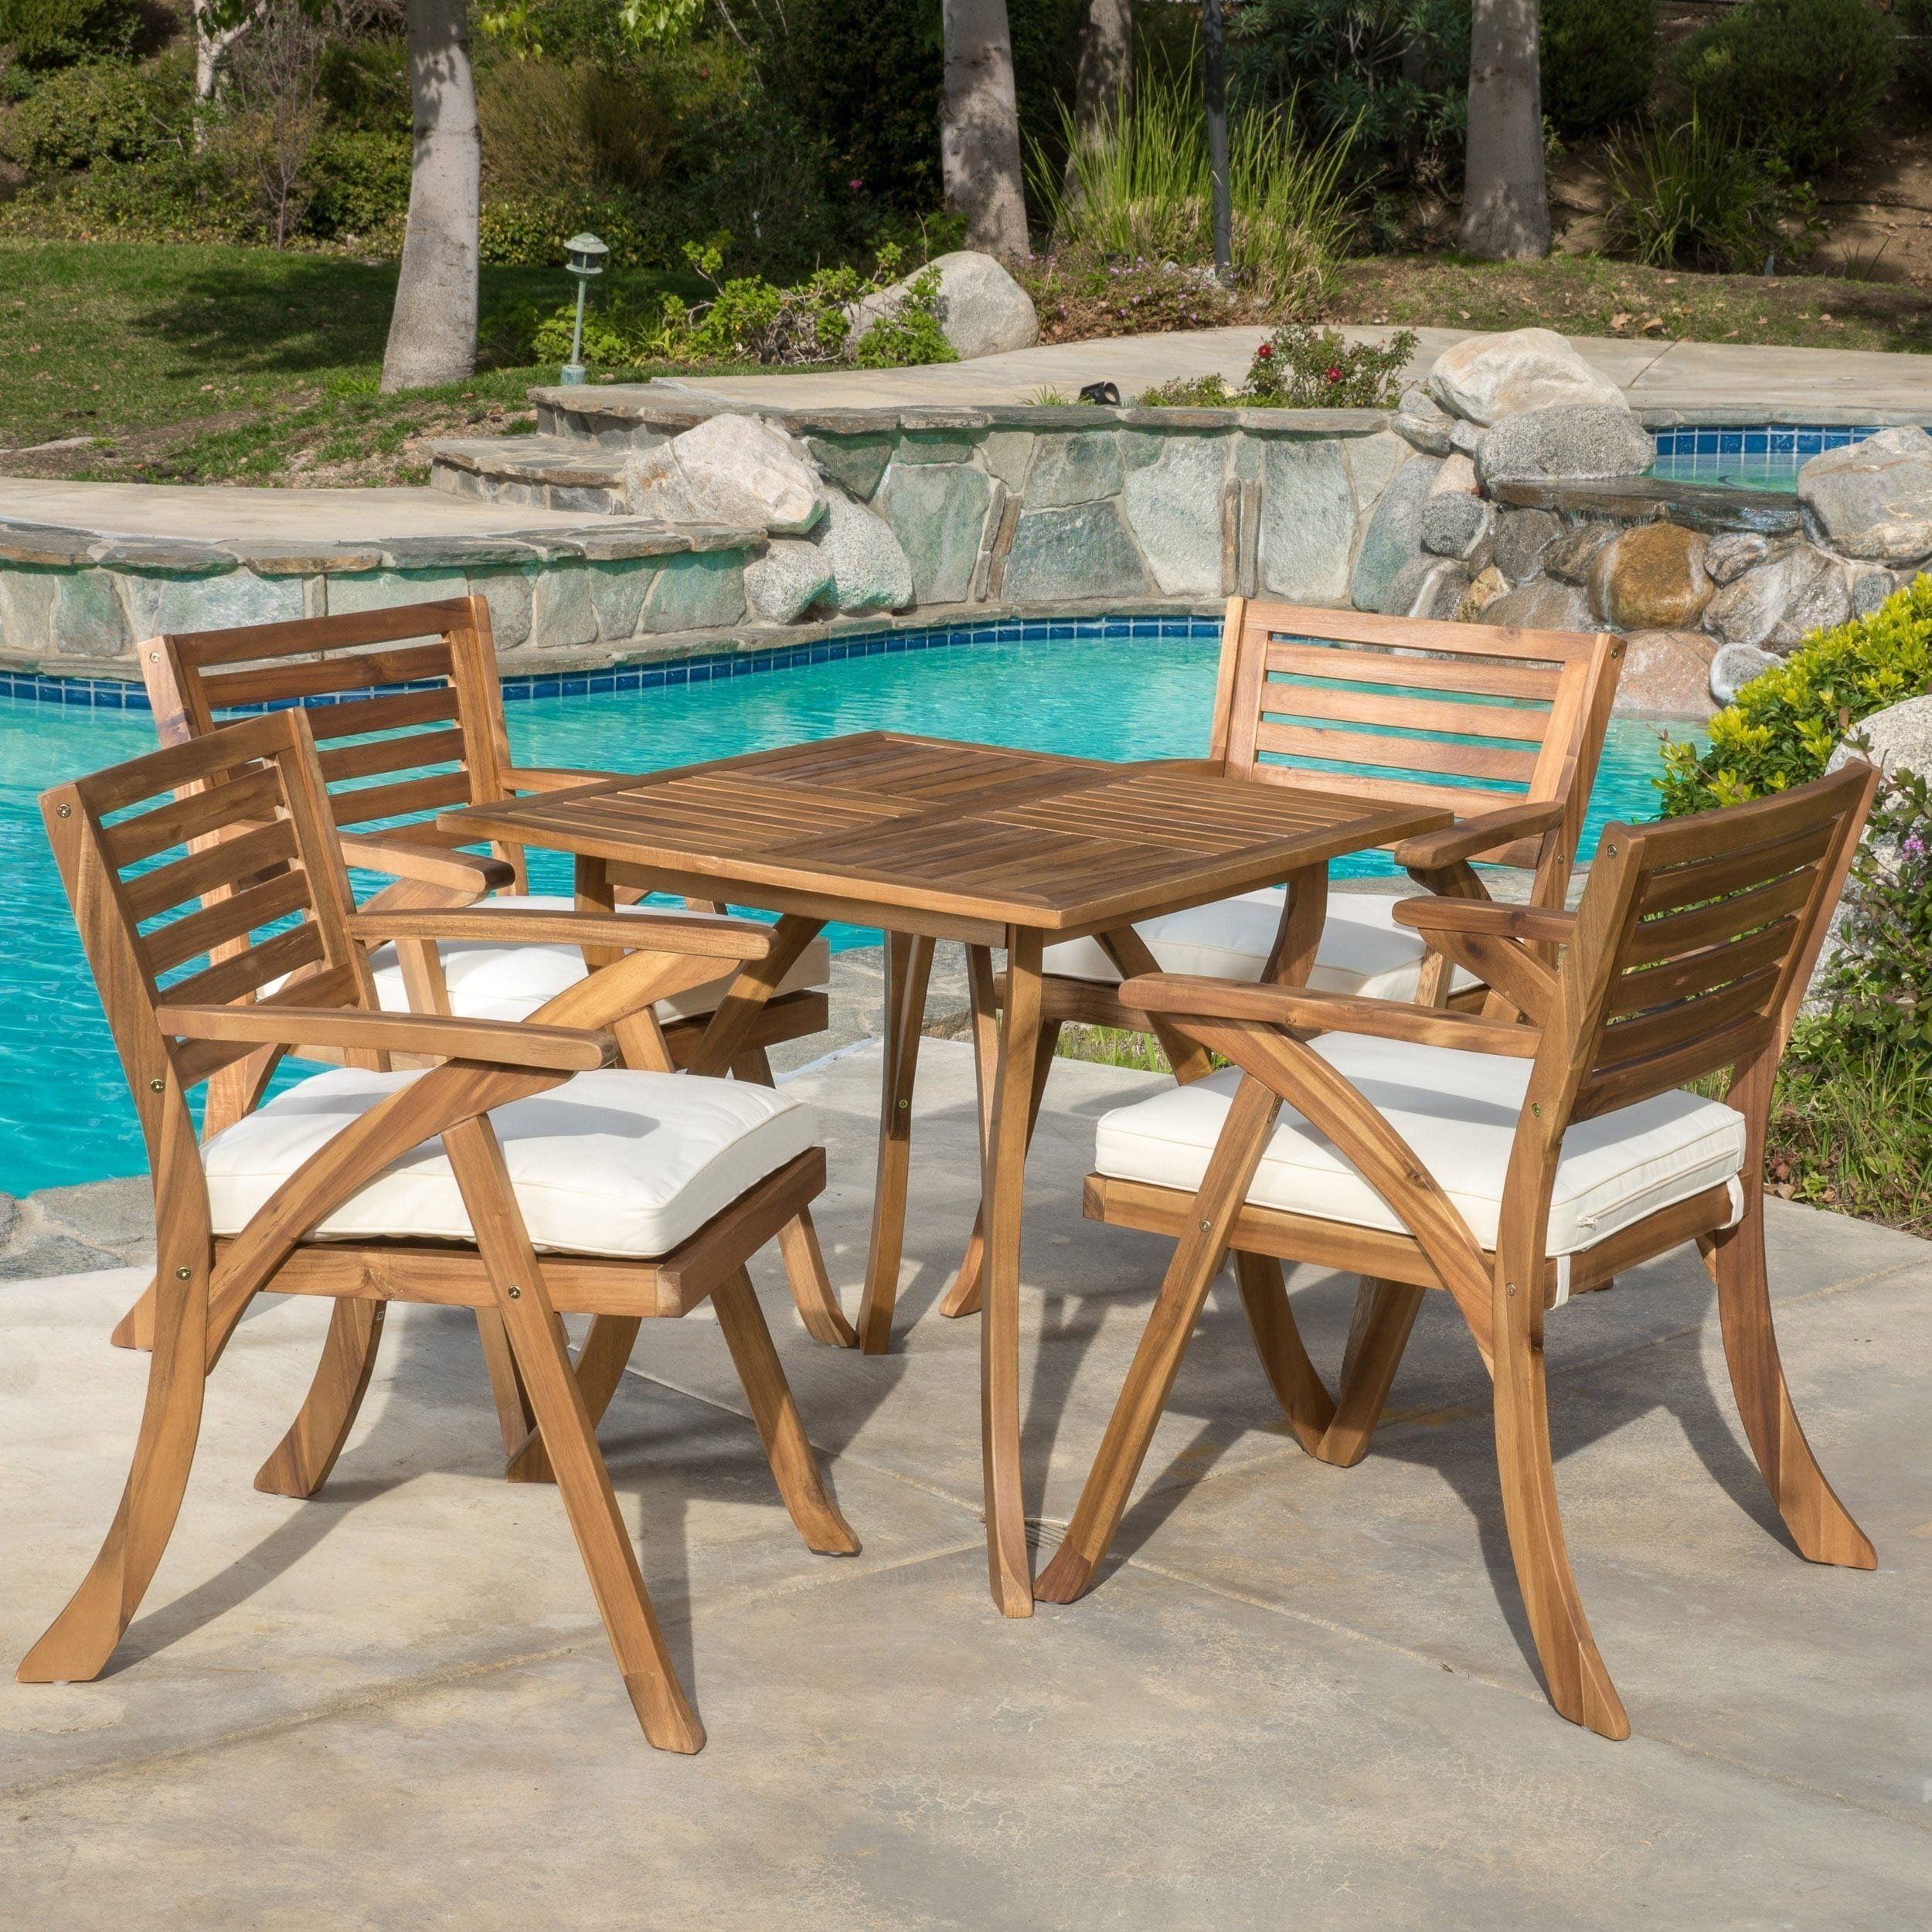 Outdoor Hermosa 5 Piece Acacia Wood Dining Set With Cushions By